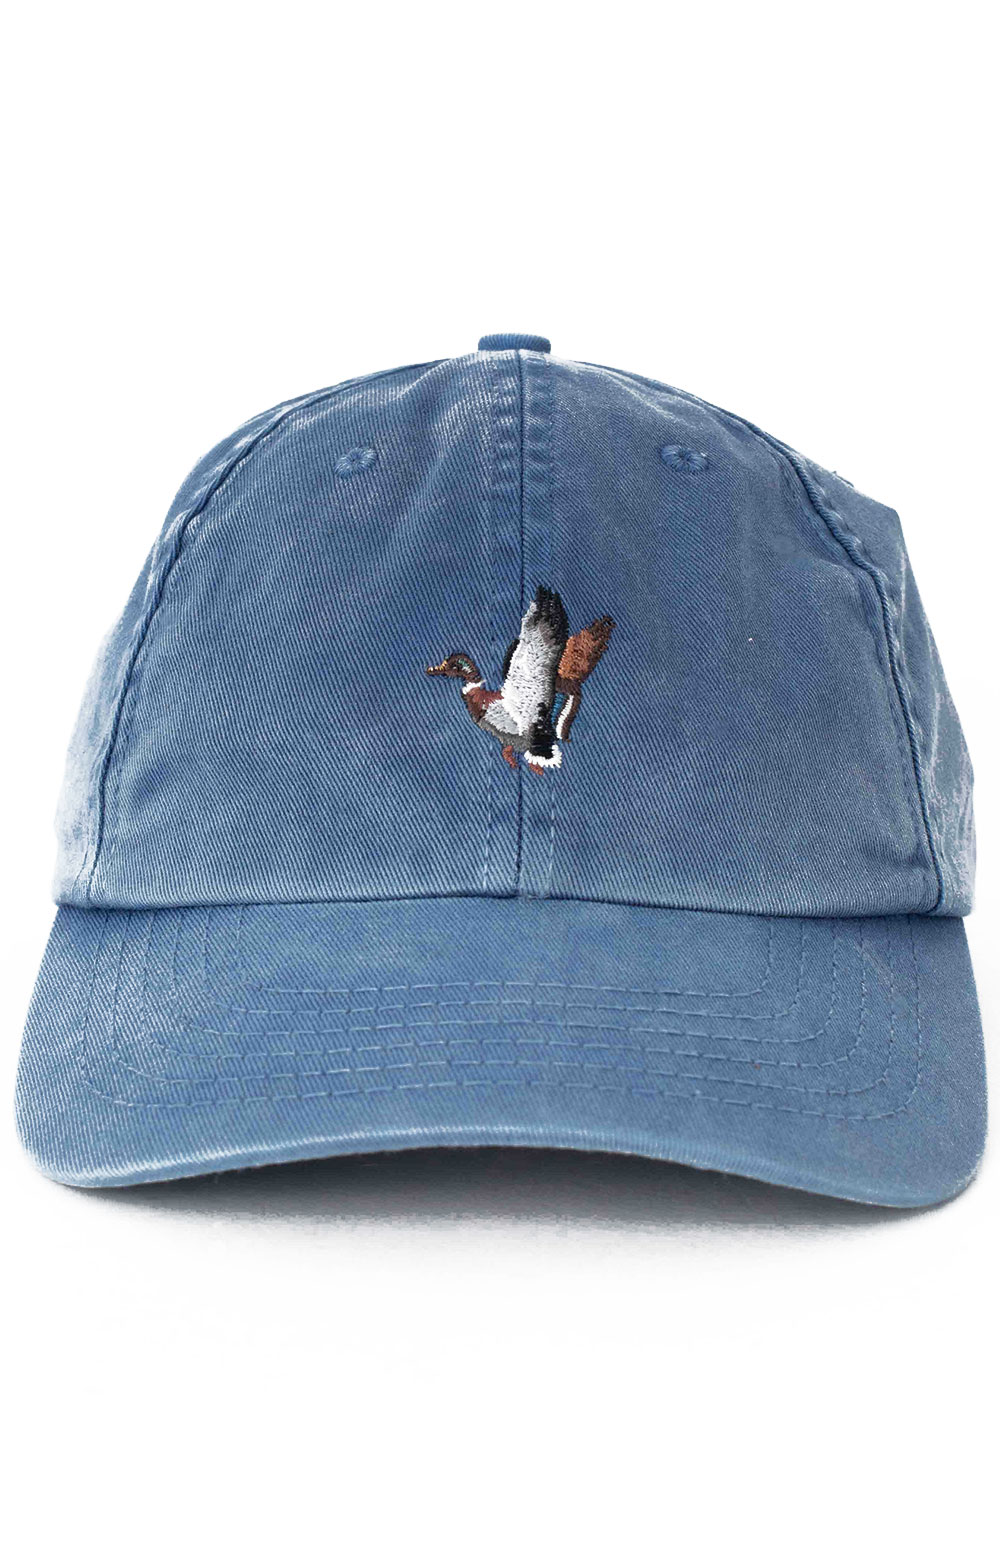 Washed Low Profile Cap - Faded Cobalt Duck  2